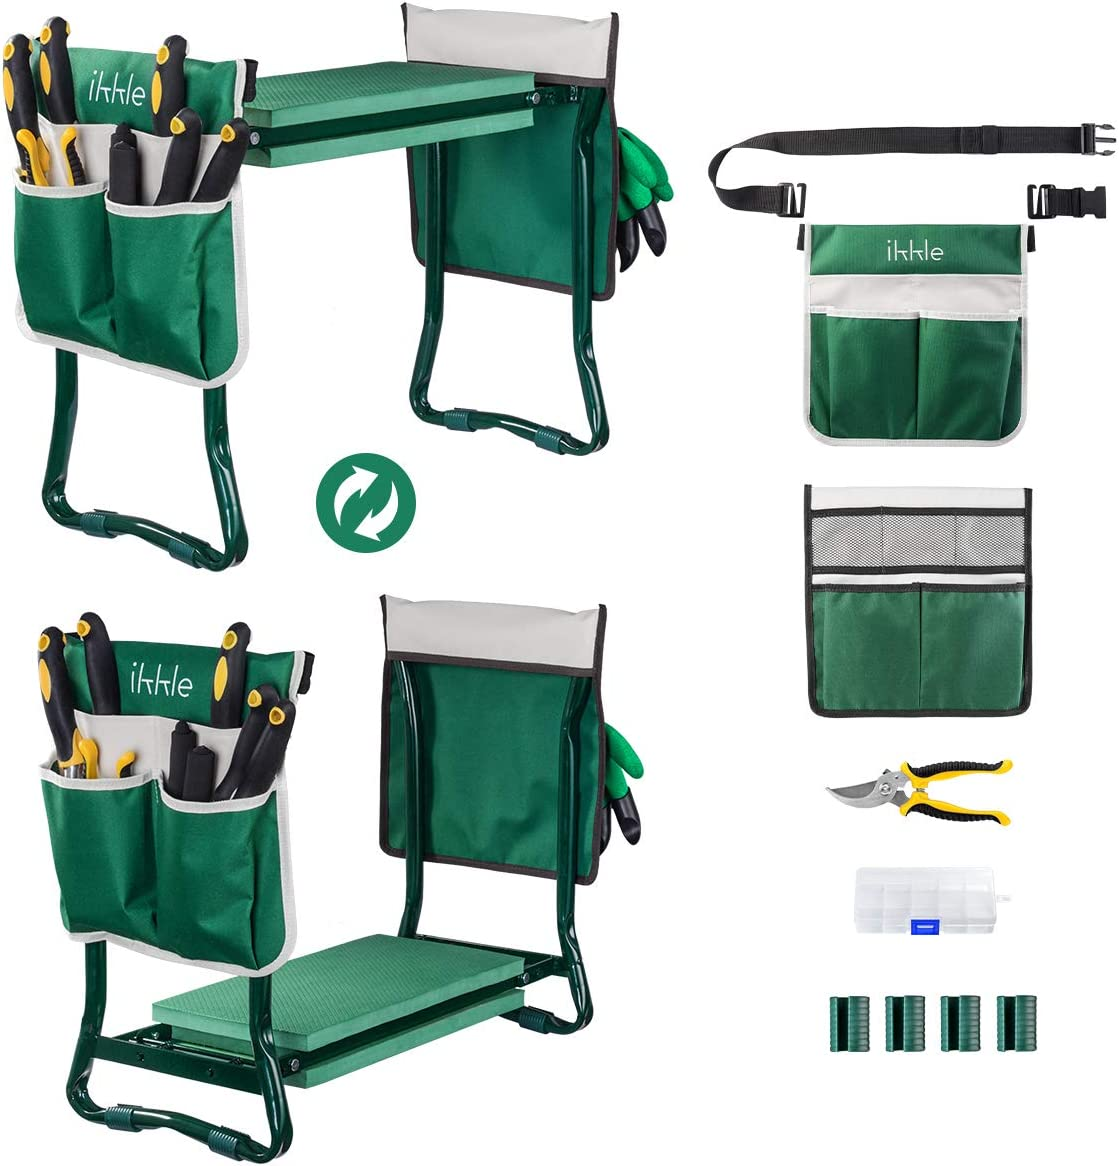 Garden Kneeler and Seat, Upgraded Folding Garden Bench Stool Portable Garden Kneeler Gardening Tools with 2 Free Tool Pouch, Detachable Belt, EVA Kneeling Pad, Pruning Shears, Ideal Gardening Gift